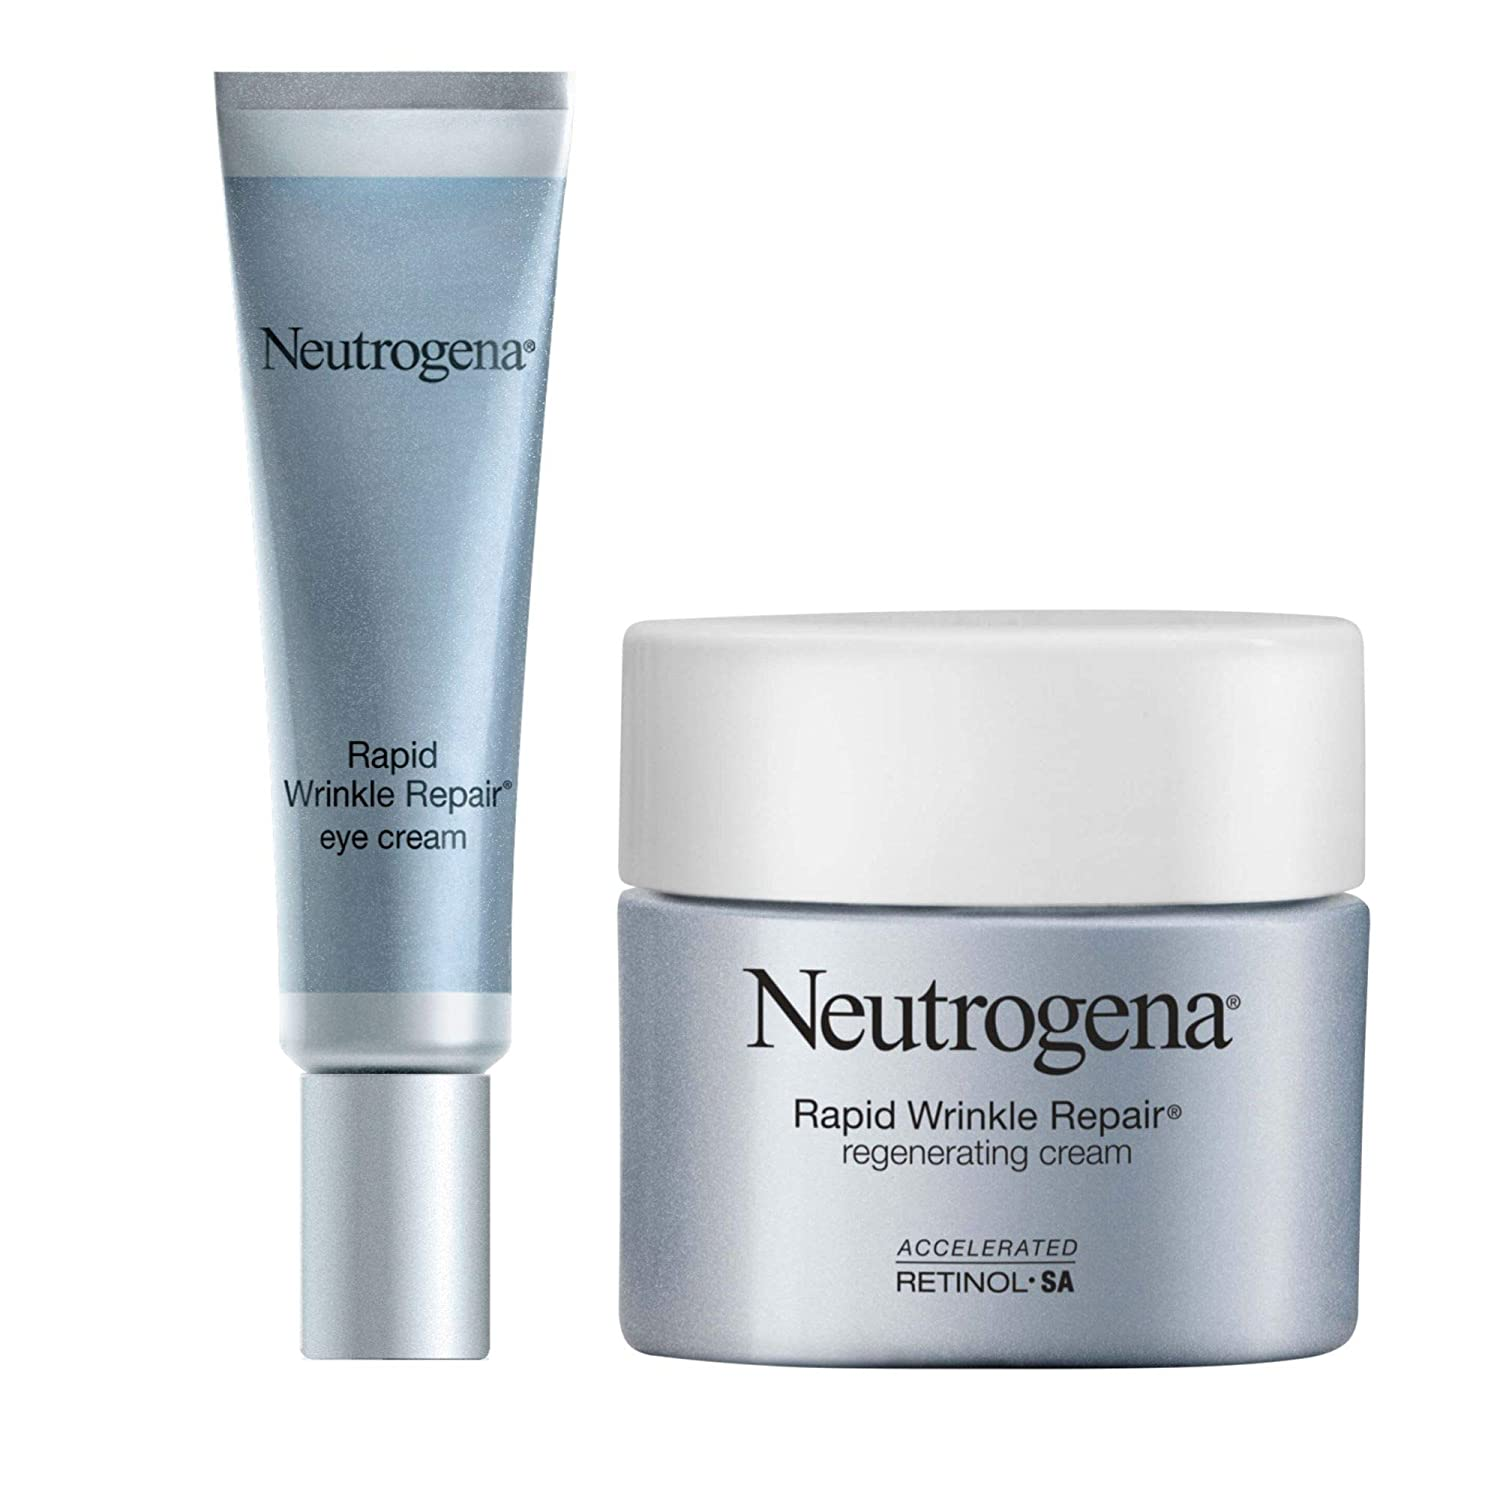 Neutrogena Rapid Wrinkle Repair Anti-Wrinkle Retinol Under Eye Cream for Dark Circles, 0.5 fl. oz and Neutrogena Rapid Wrinkle Repair Retinol Regenerating Anti-Aging Face Cream & Retinol, 1.7 oz